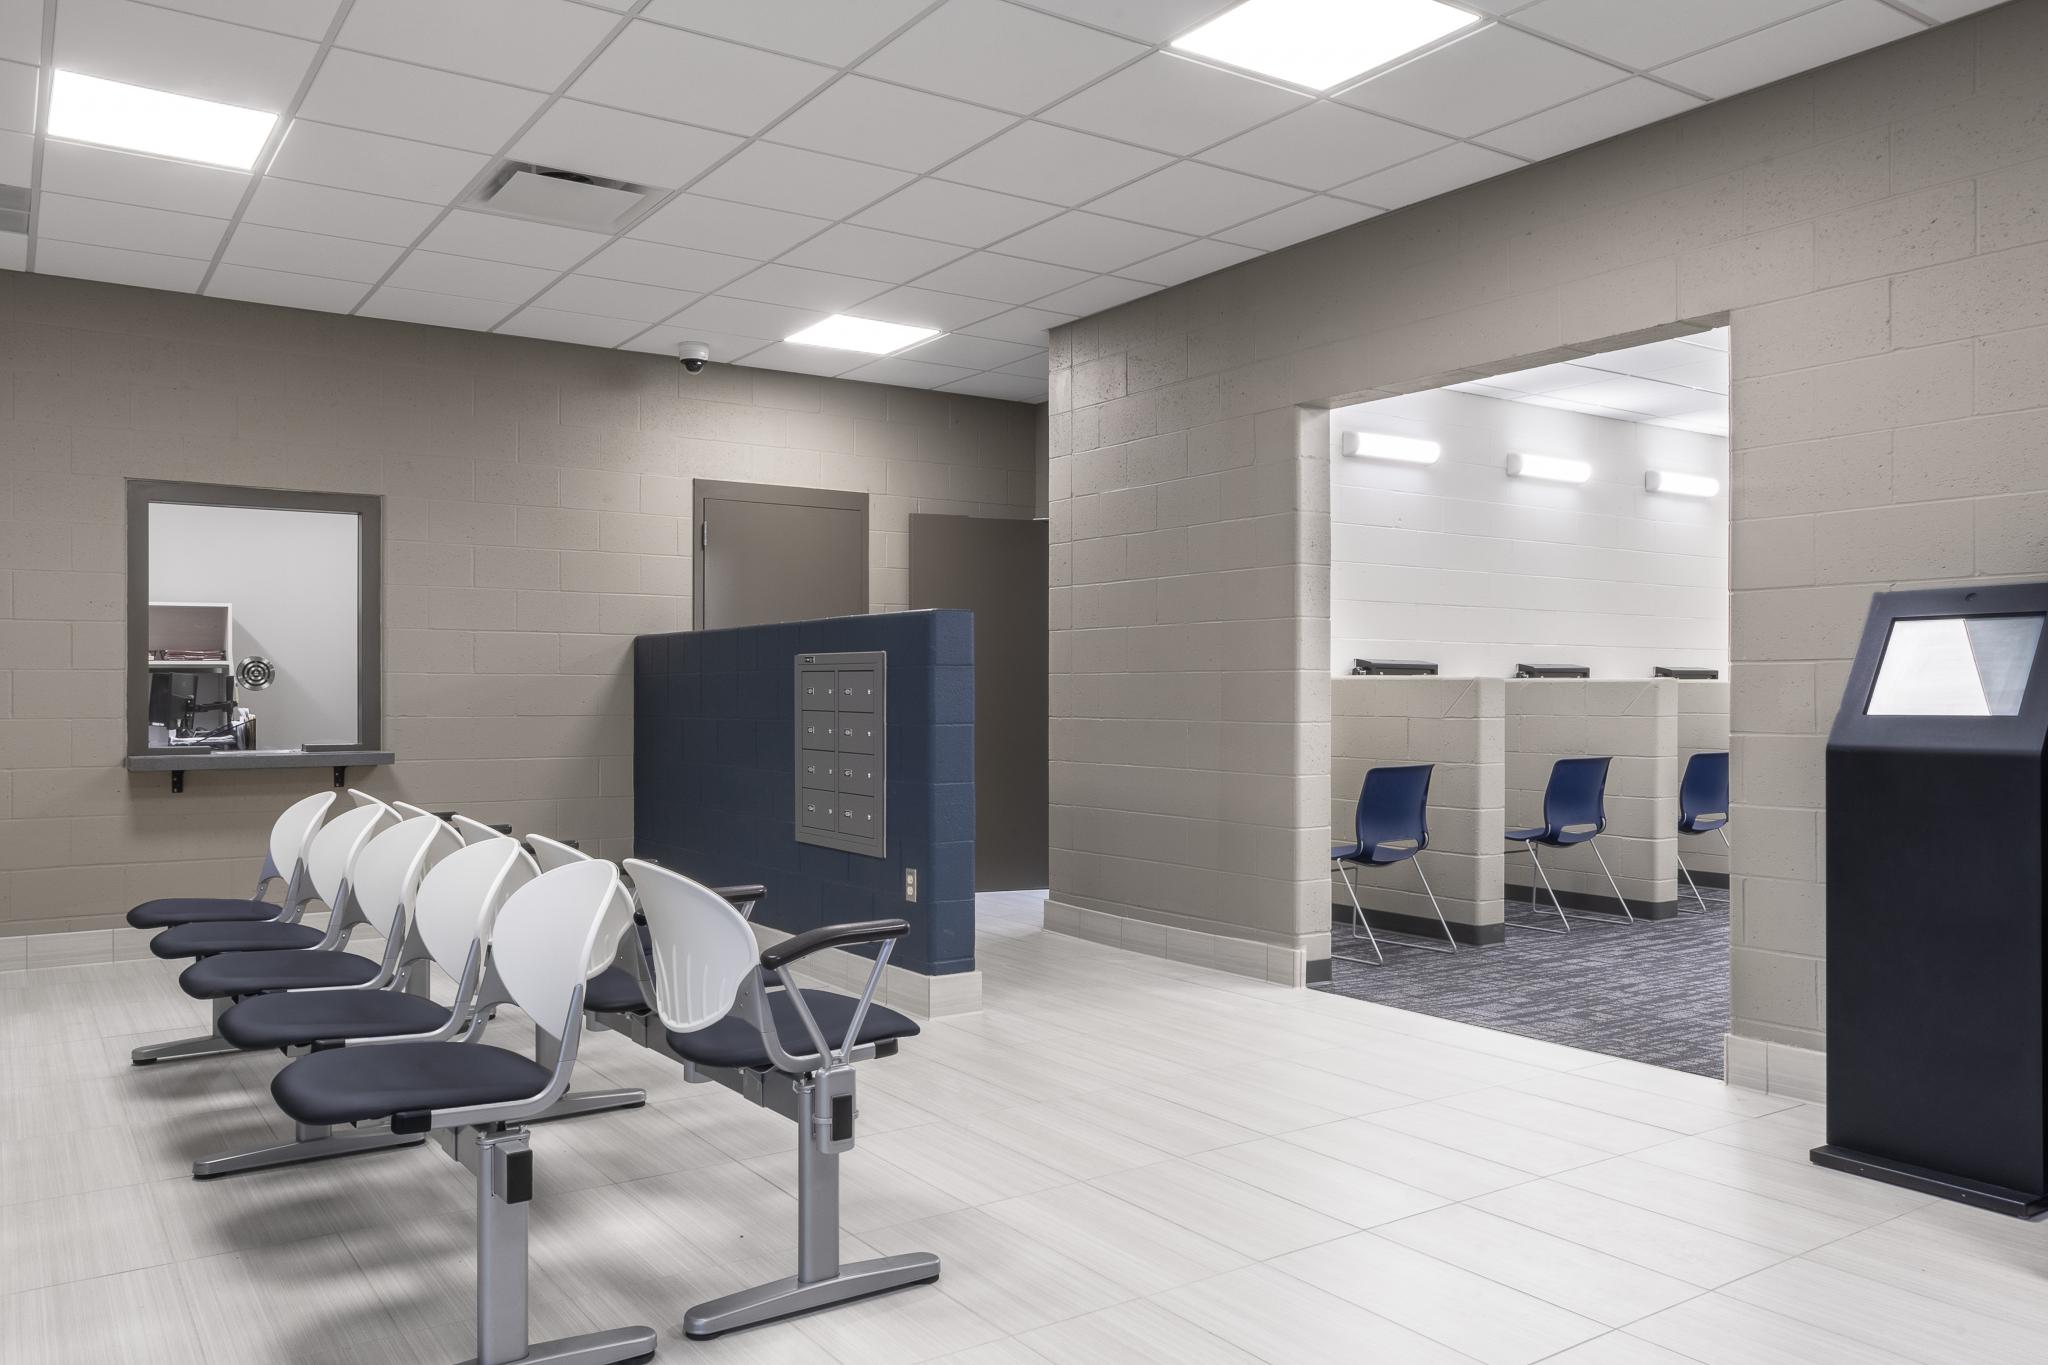 image of lobby space with seating